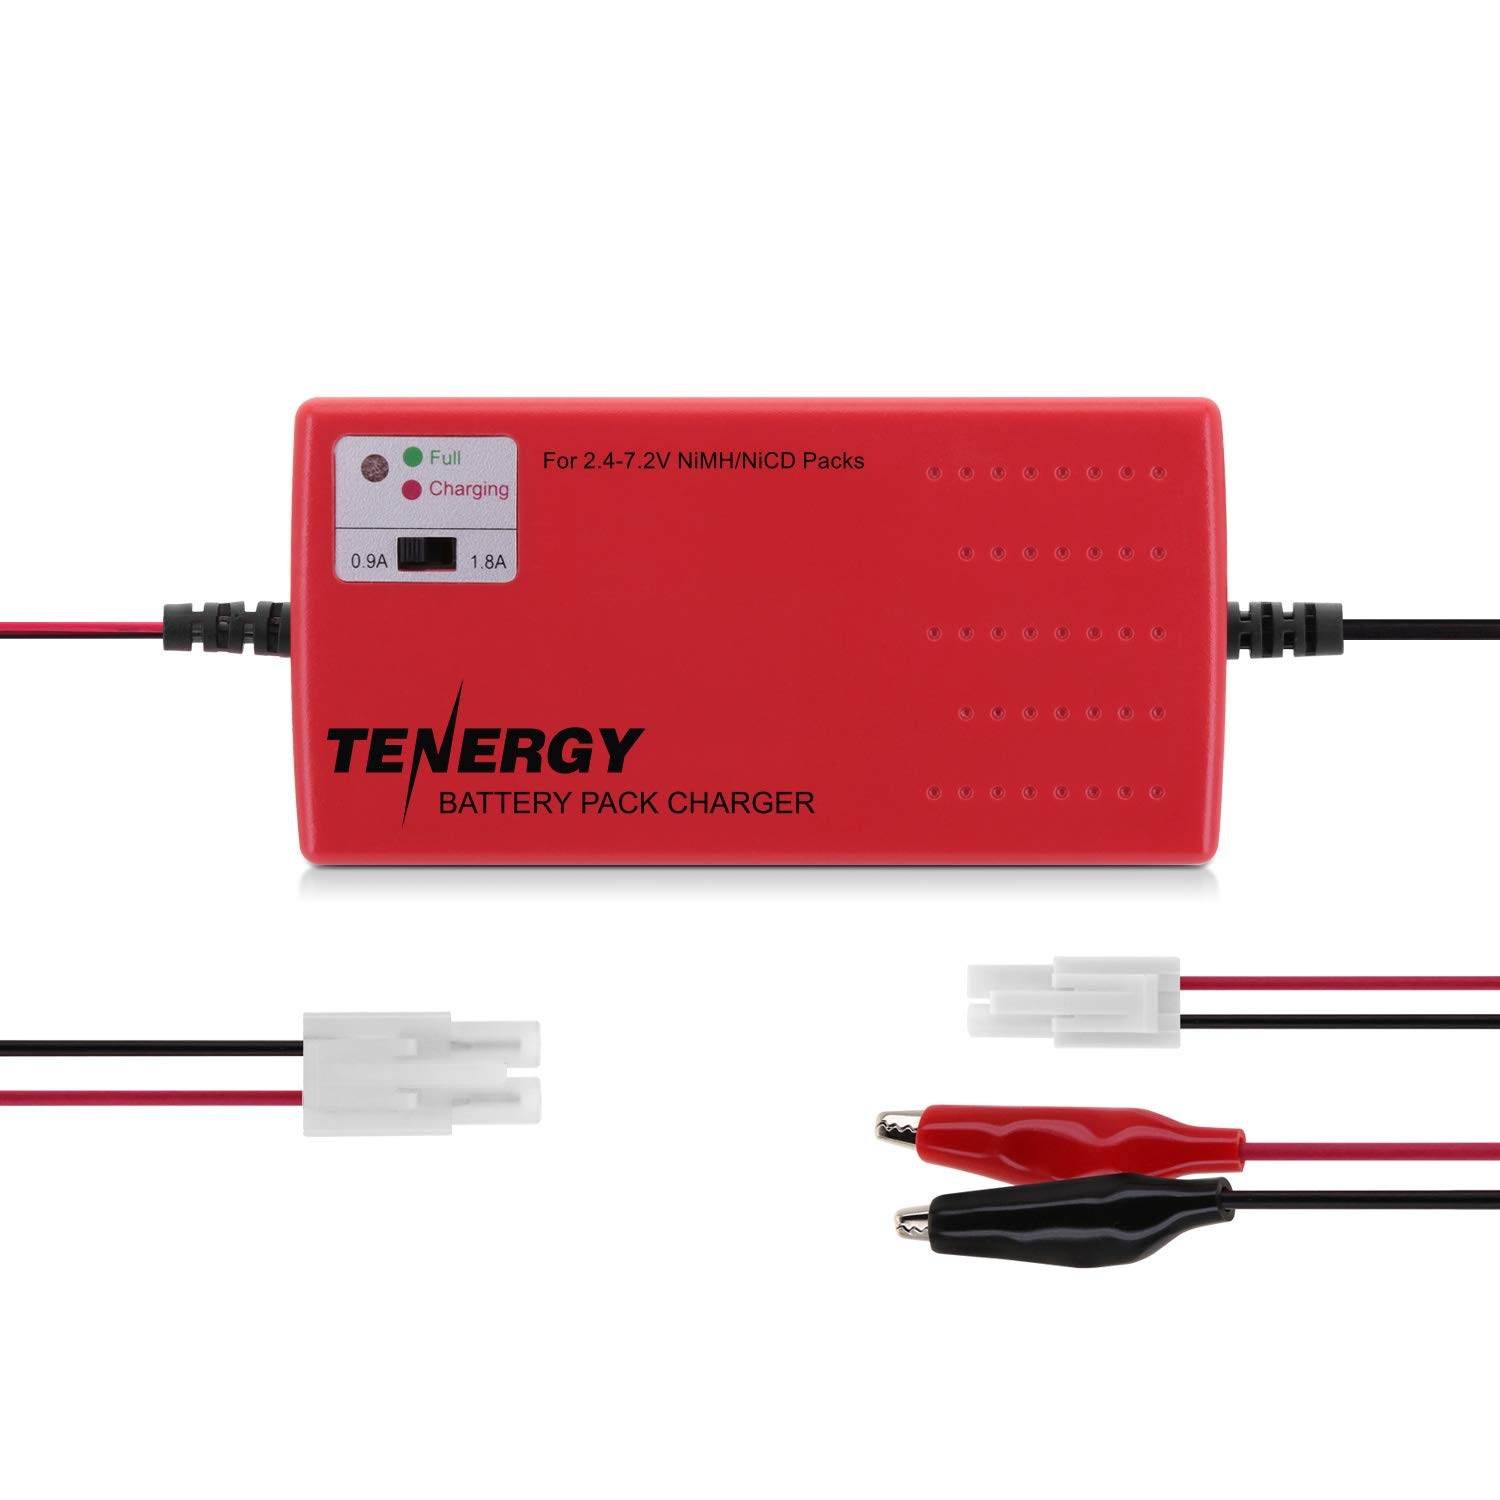 Tenergy Smart Universal Charger for NiMH Battery Pack (2.4V - 7.2V)